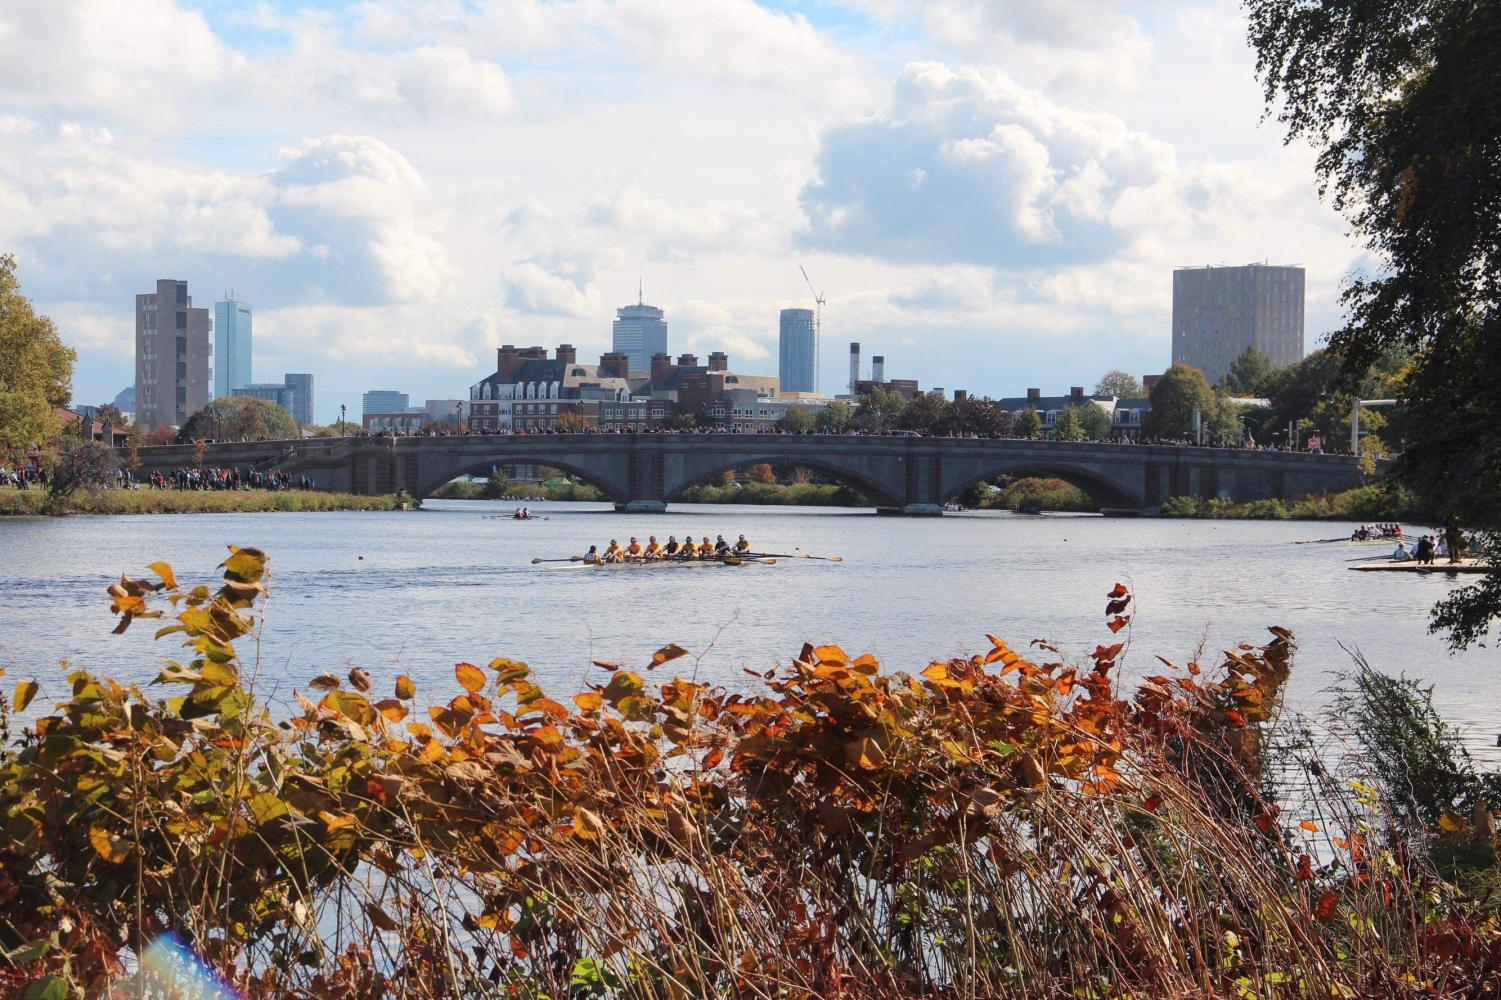 Rowing teams race on the Charles River for the annual Head of the Charles Regatta in Boston.